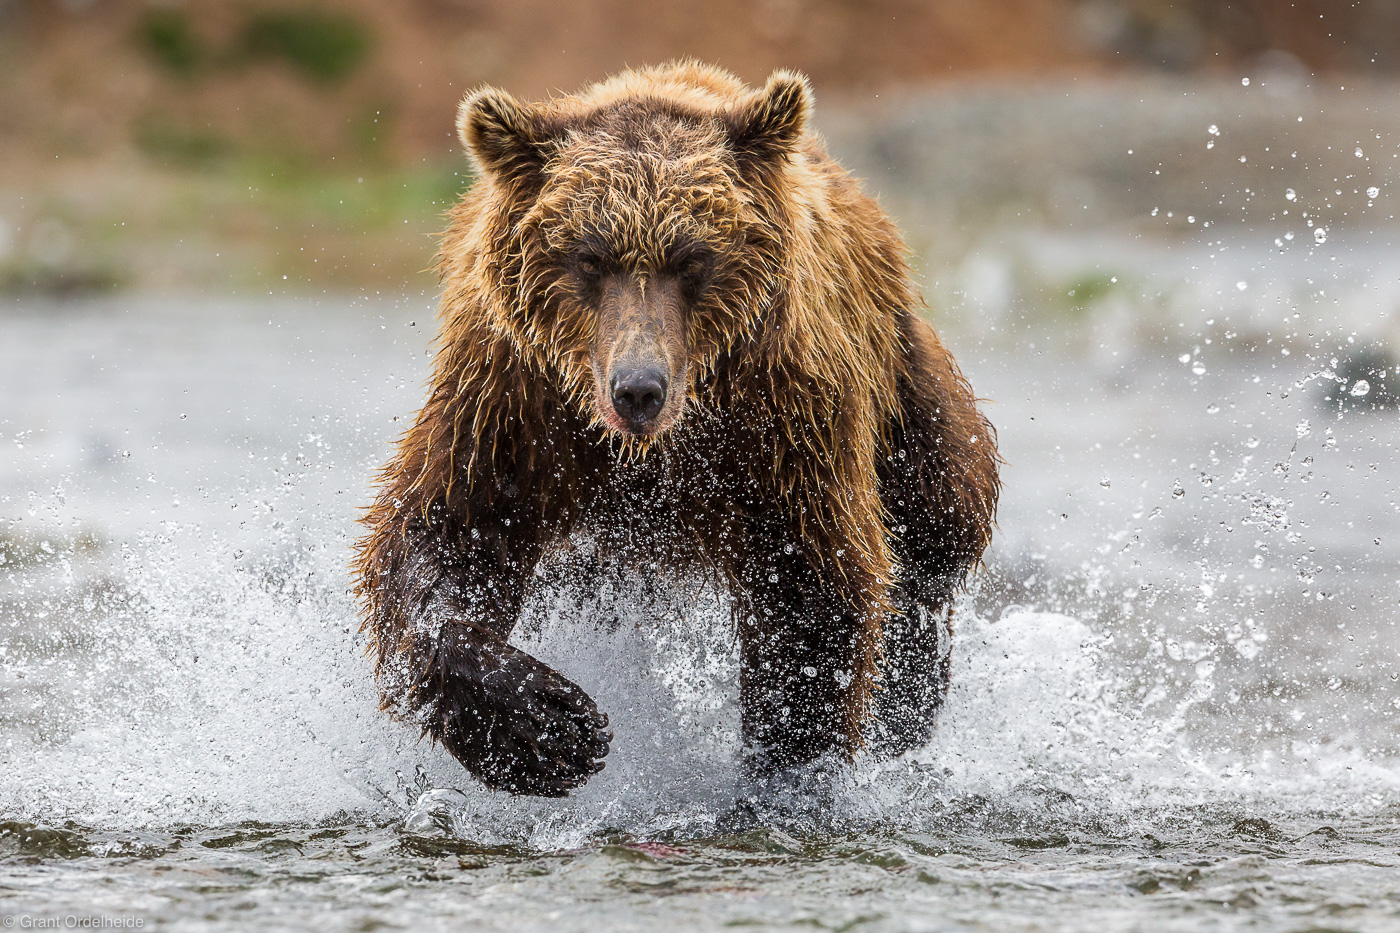 alaska, bear, brown, katmai, naitonal park, usa, hunting, salmon, preserve, sockeye, photo